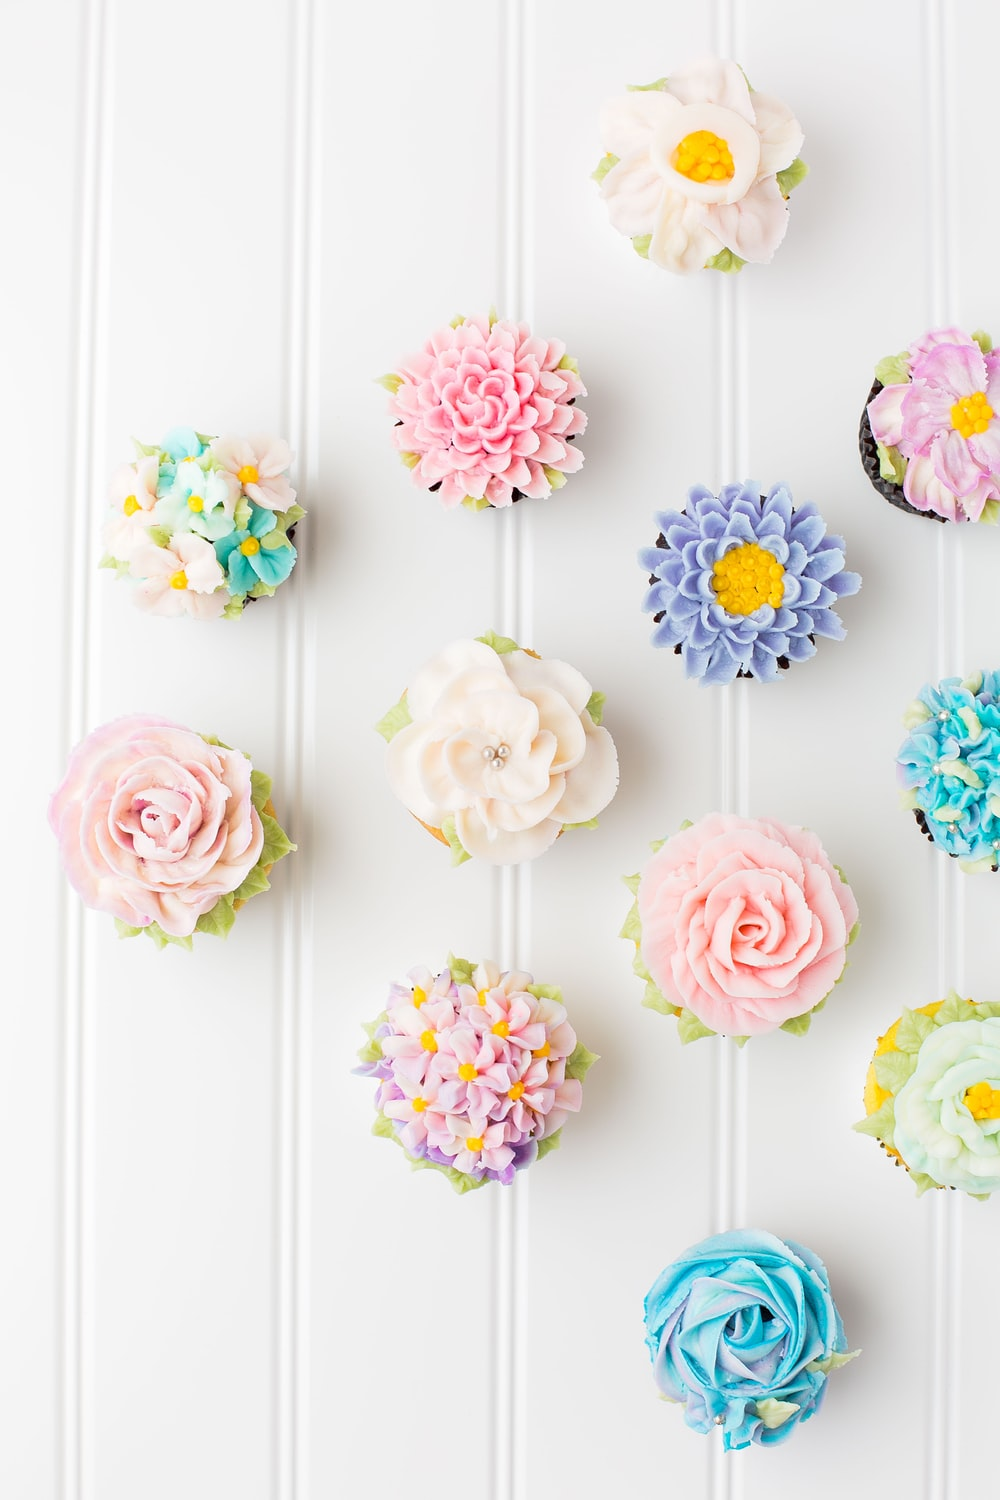 Beautiful pictures download free images on unsplash flower cupcakes on white surface izmirmasajfo